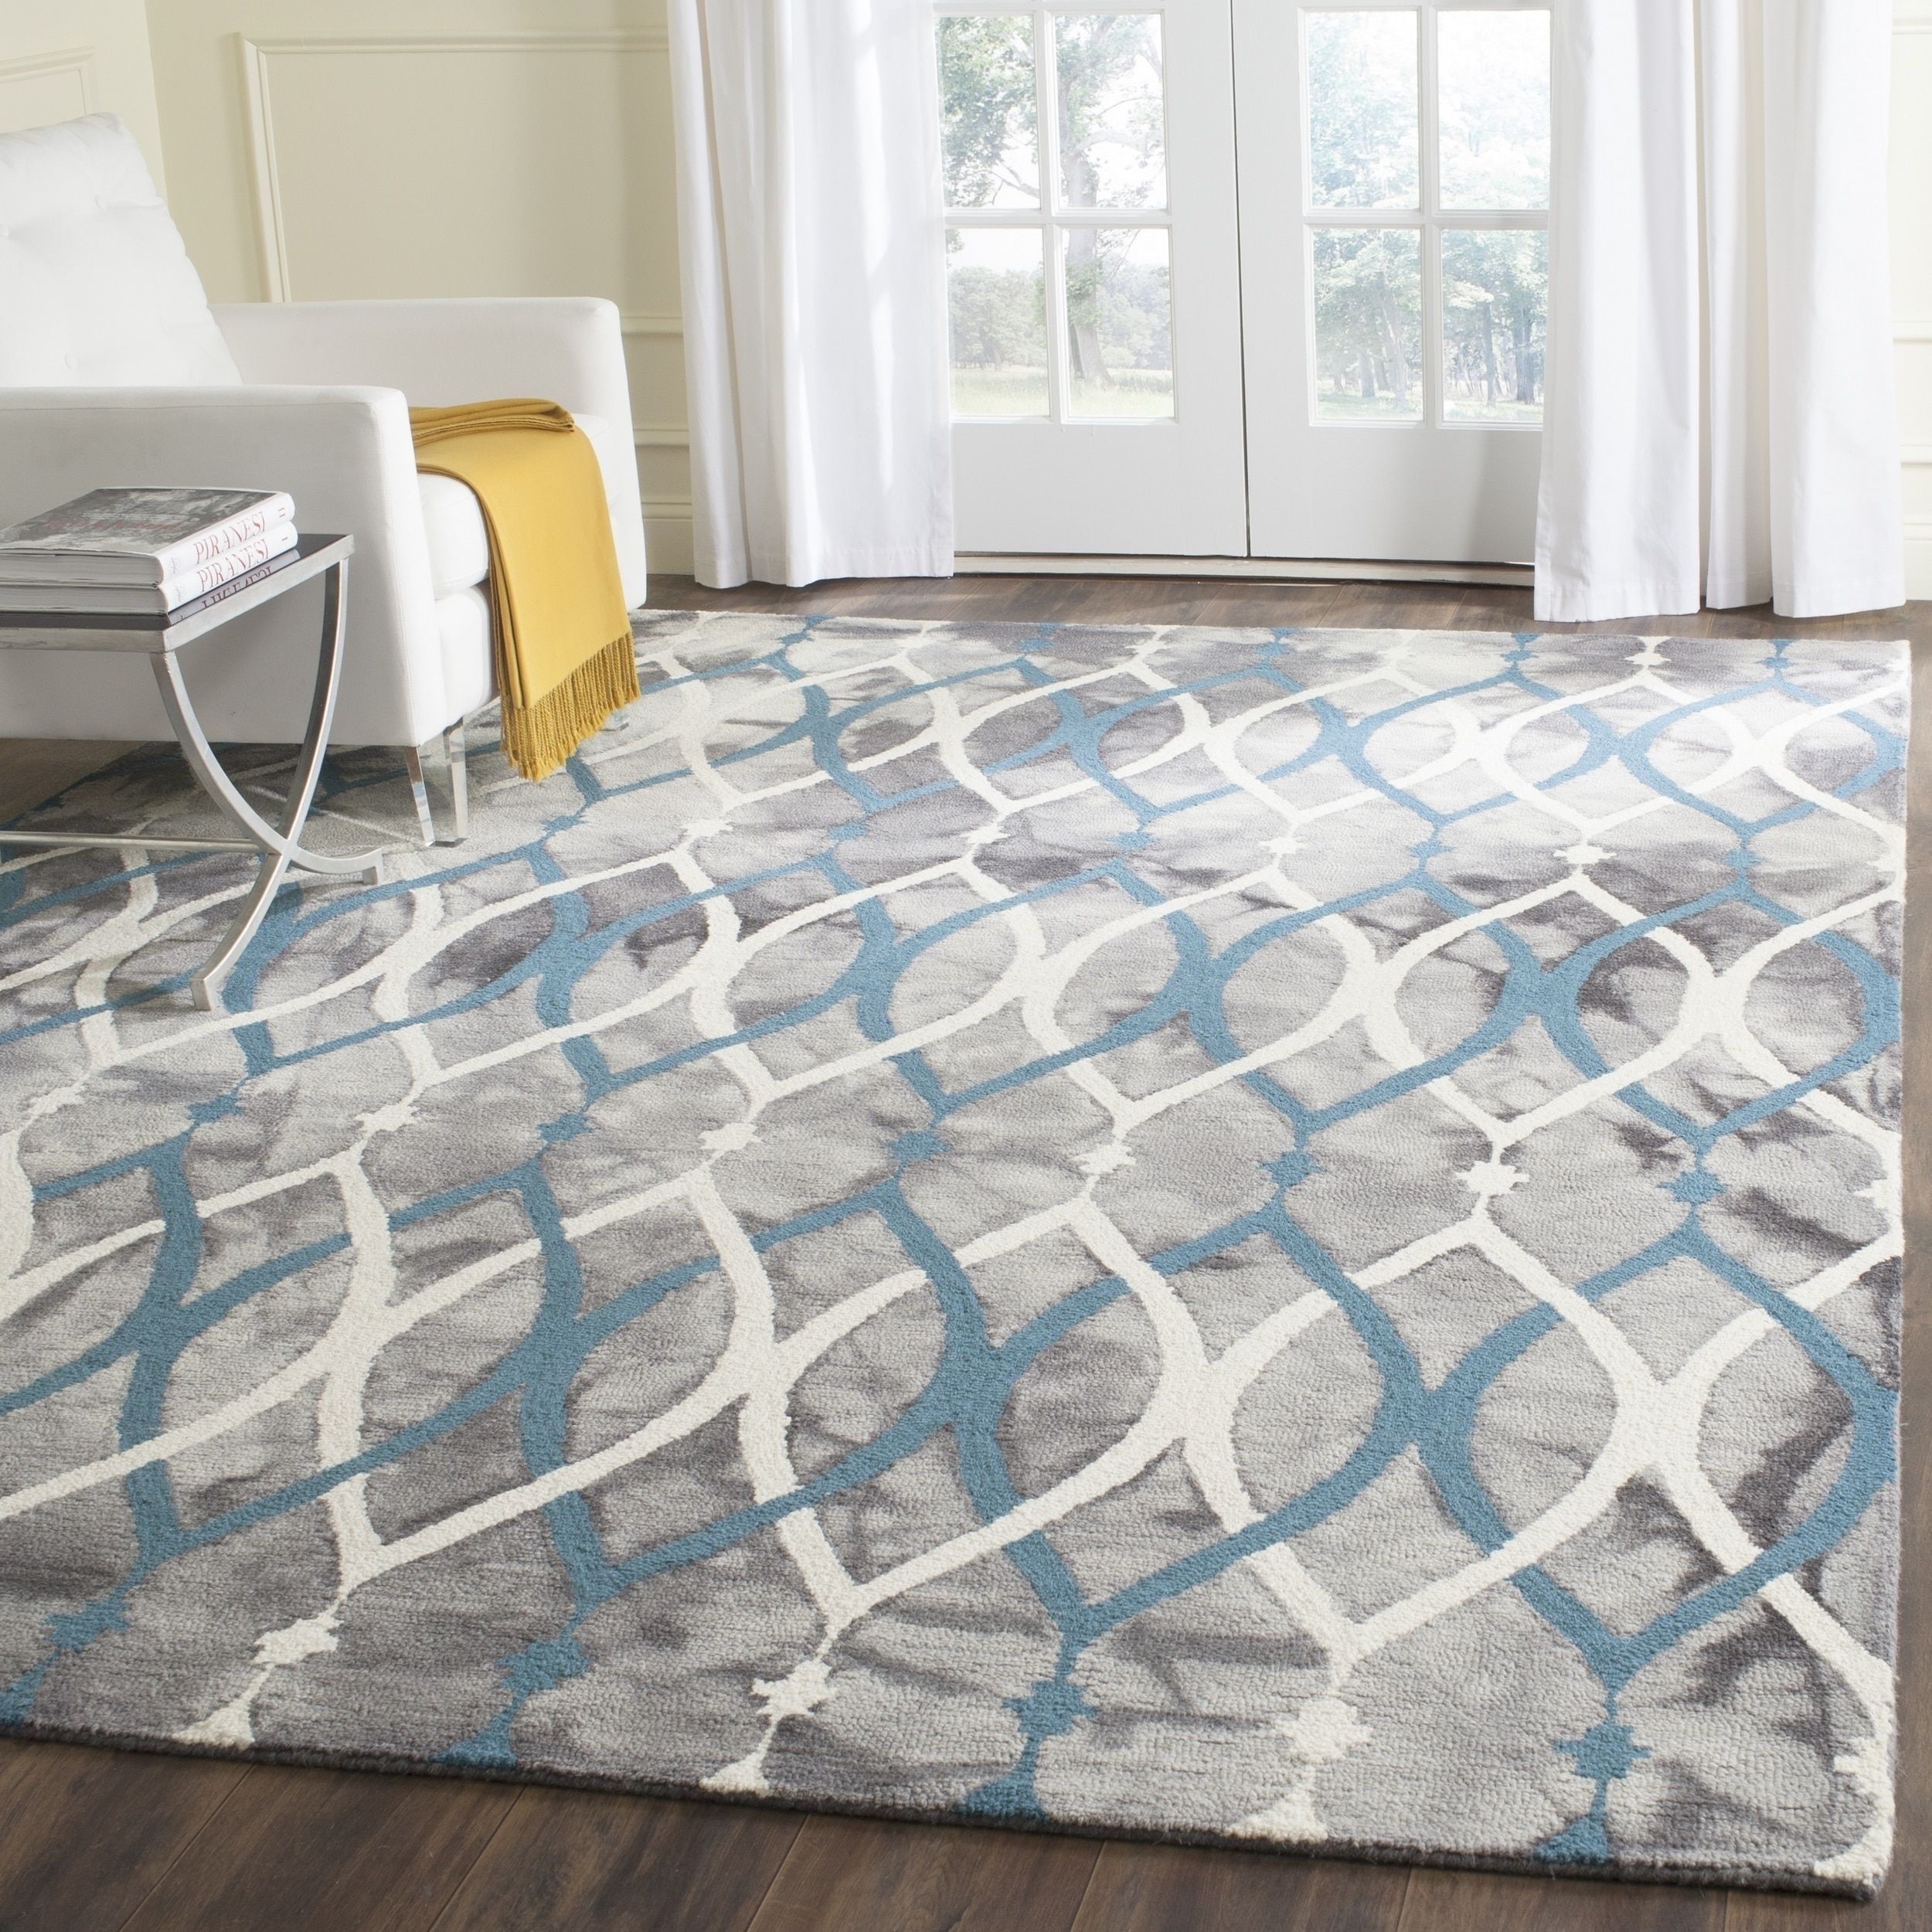 Overstock Com Online Shopping Bedding Furniture Electronics Jewelry Clothing More Blue Wool Rugs Modern Carpets Design Geometric Area Rug